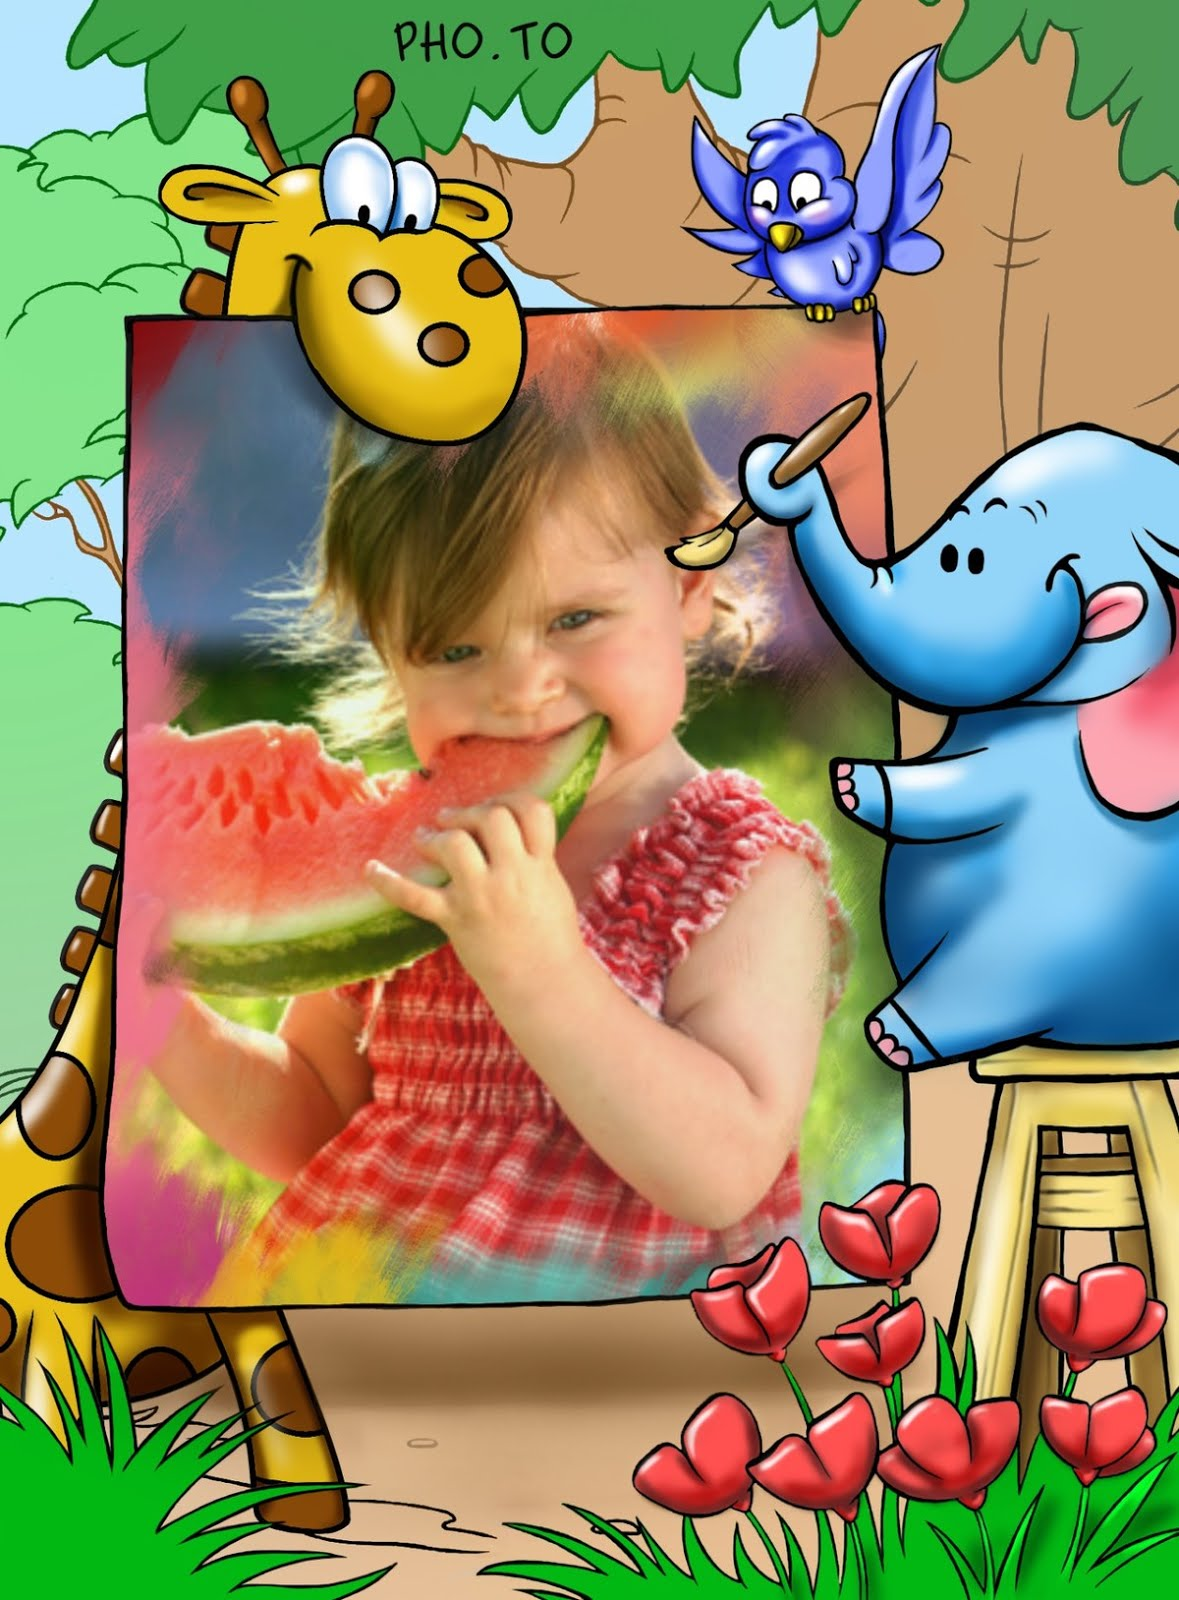 Photo frame with anumals is a plied to a photo of a kid, eating water mellon